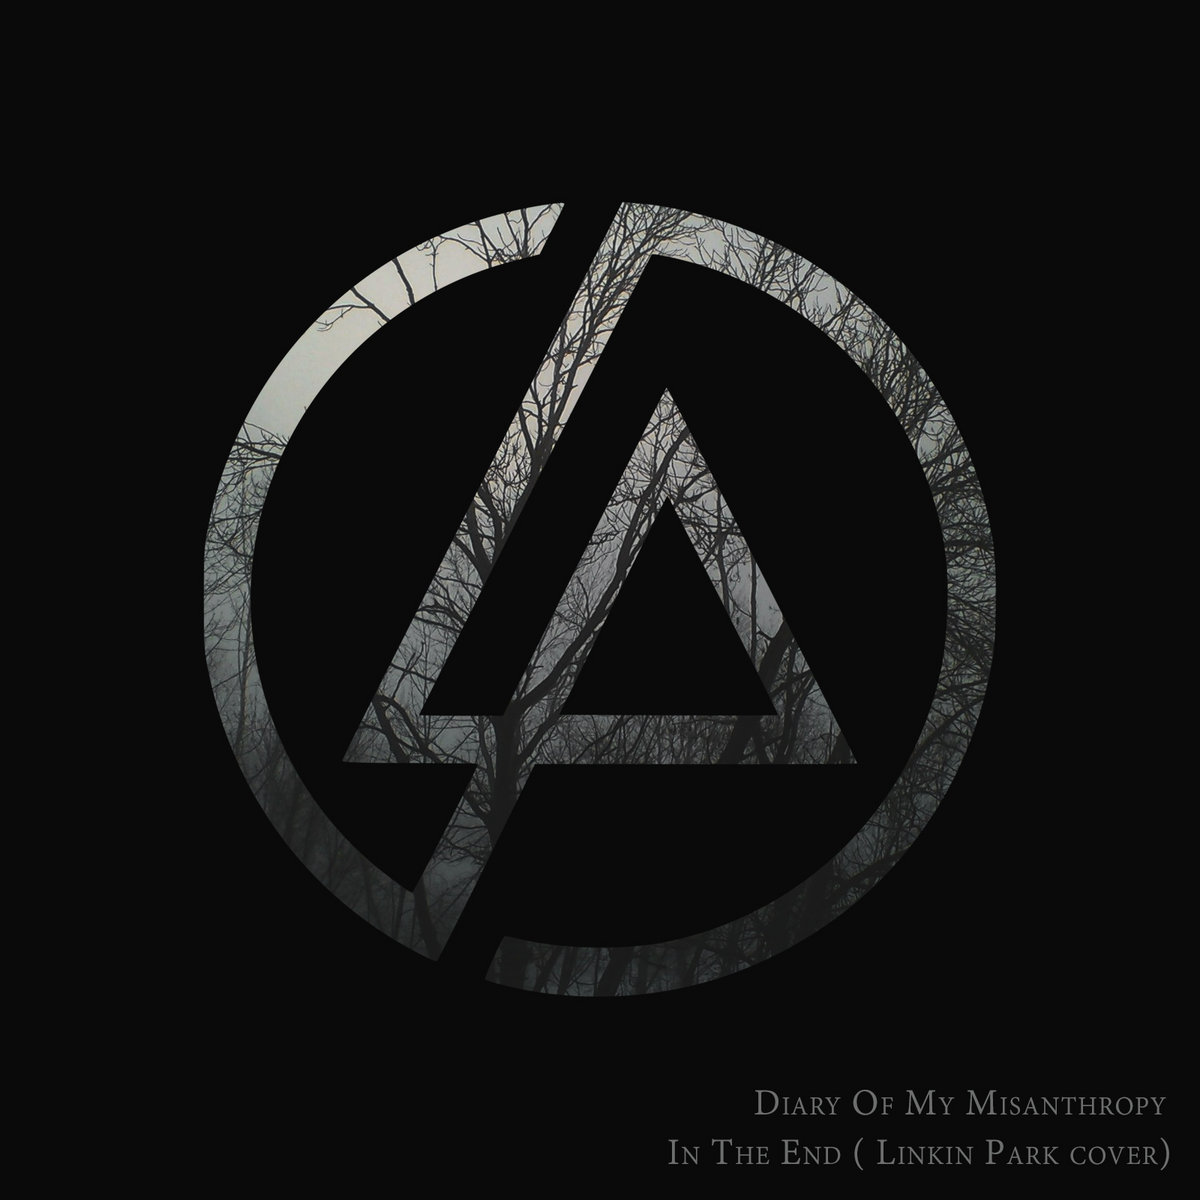 In the end linkin park cover diary of my misanthropy by diary of my misanthropy biocorpaavc